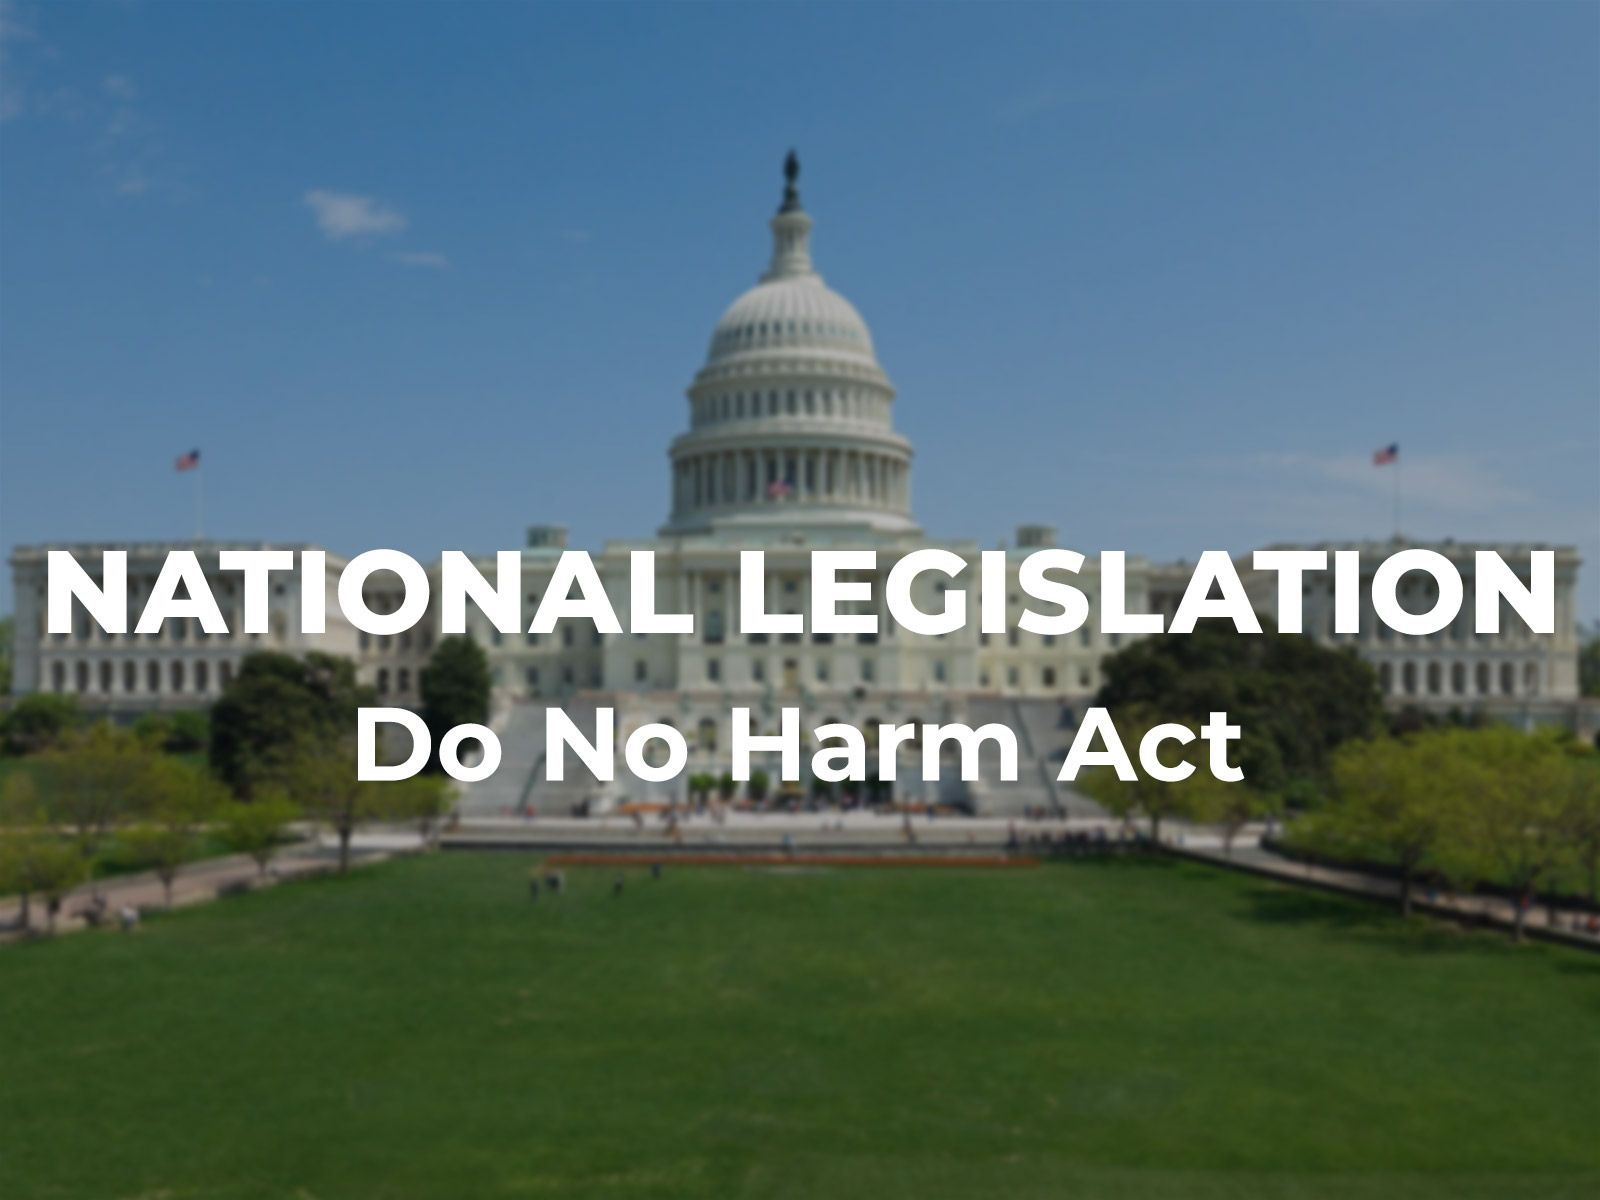 American Atheists Stands up for the Do No Harm Act | American Atheists